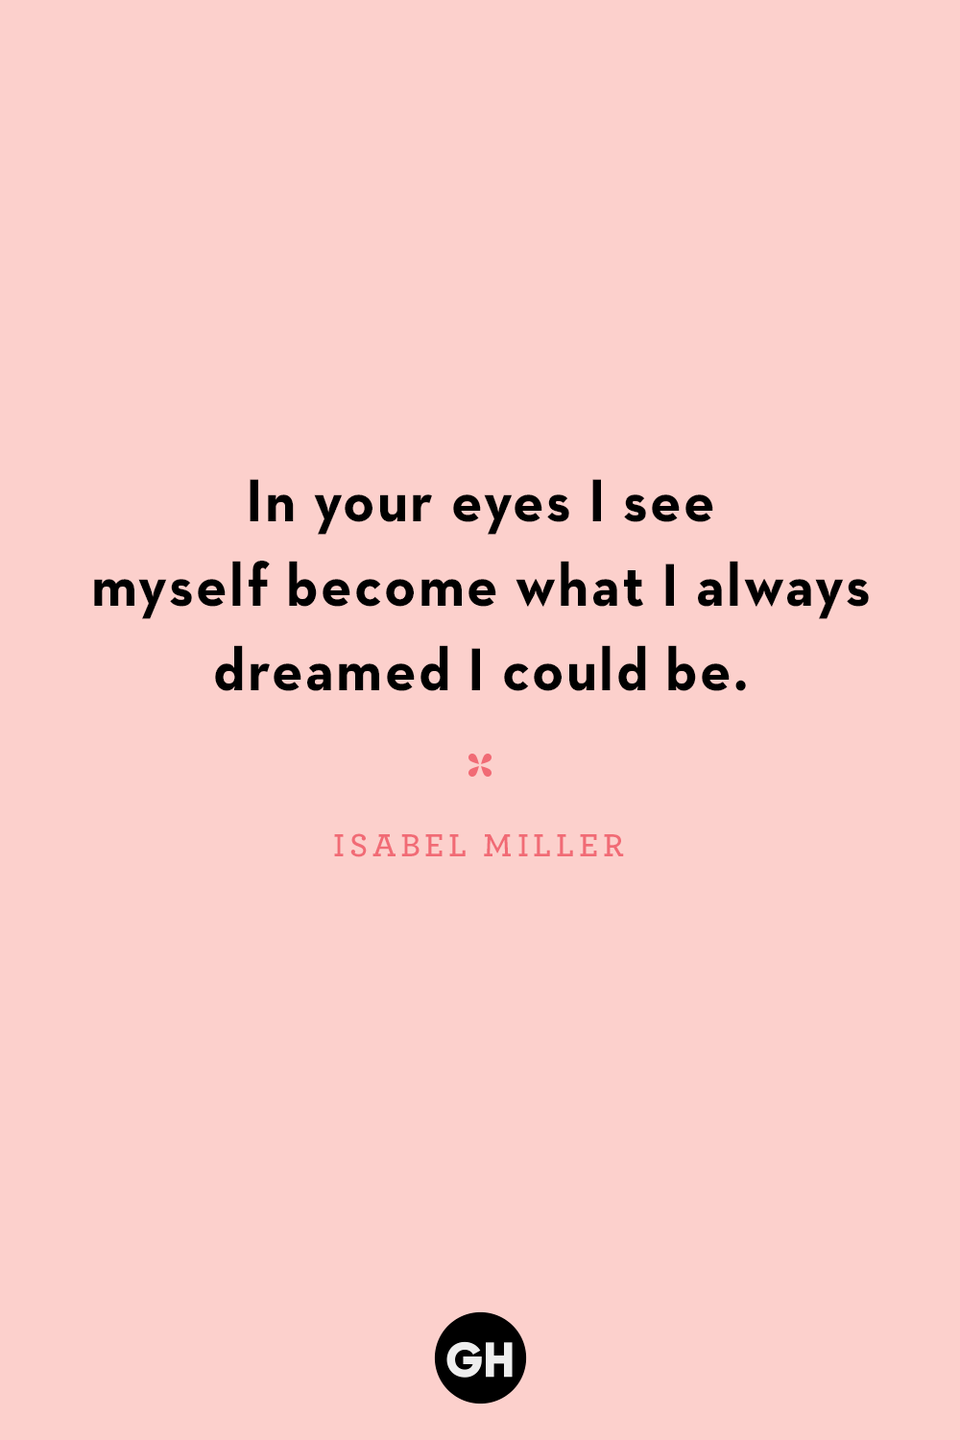 <p>In your eyes I see myself become what I always dreamed I could be.</p>